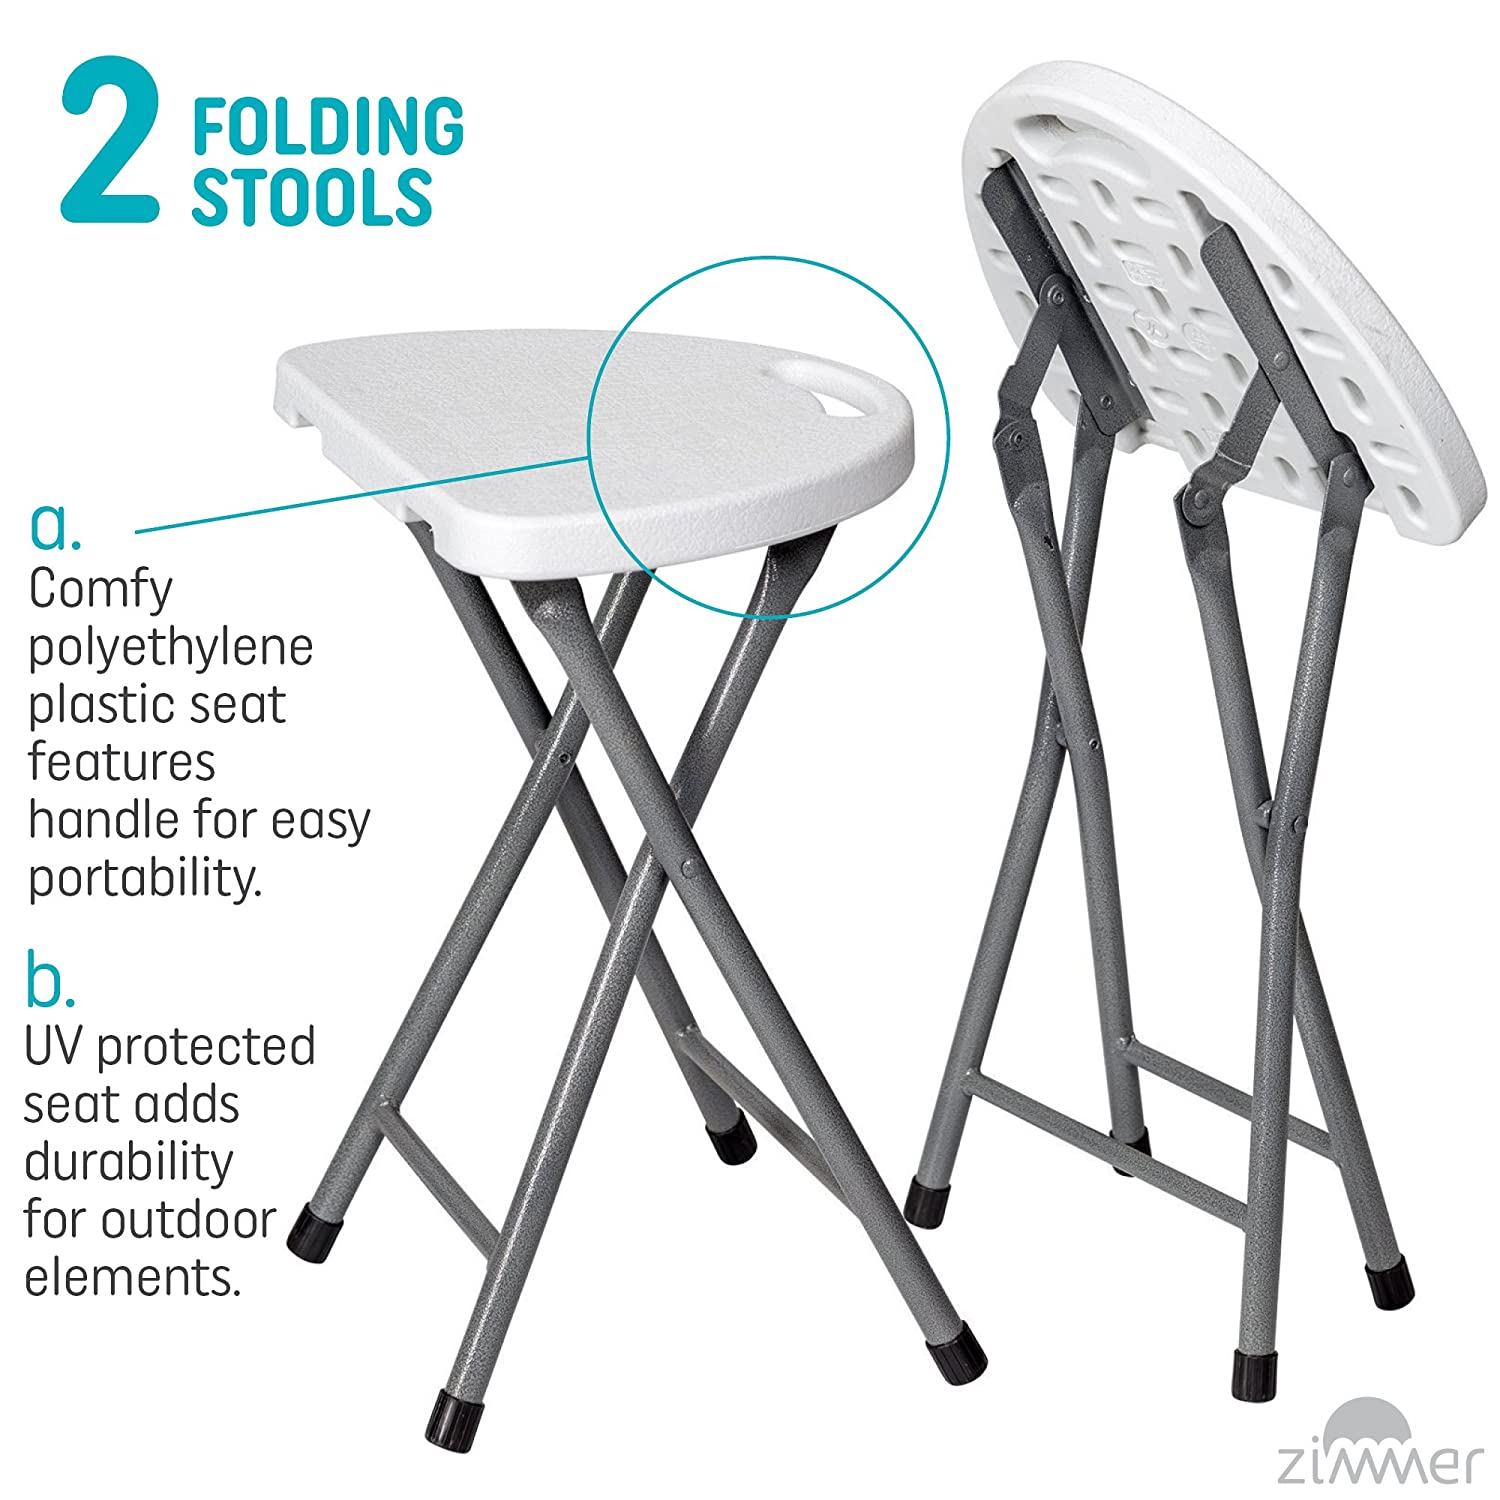 Weather and Impact Resistant for Indoor//Outdoor Use Portable Plastic Chair with Durable Steel Frame Legs for 220 Pound Capacity 18-Inch Set of 2 Easy Carry Handle White Zimmer Folding Stool